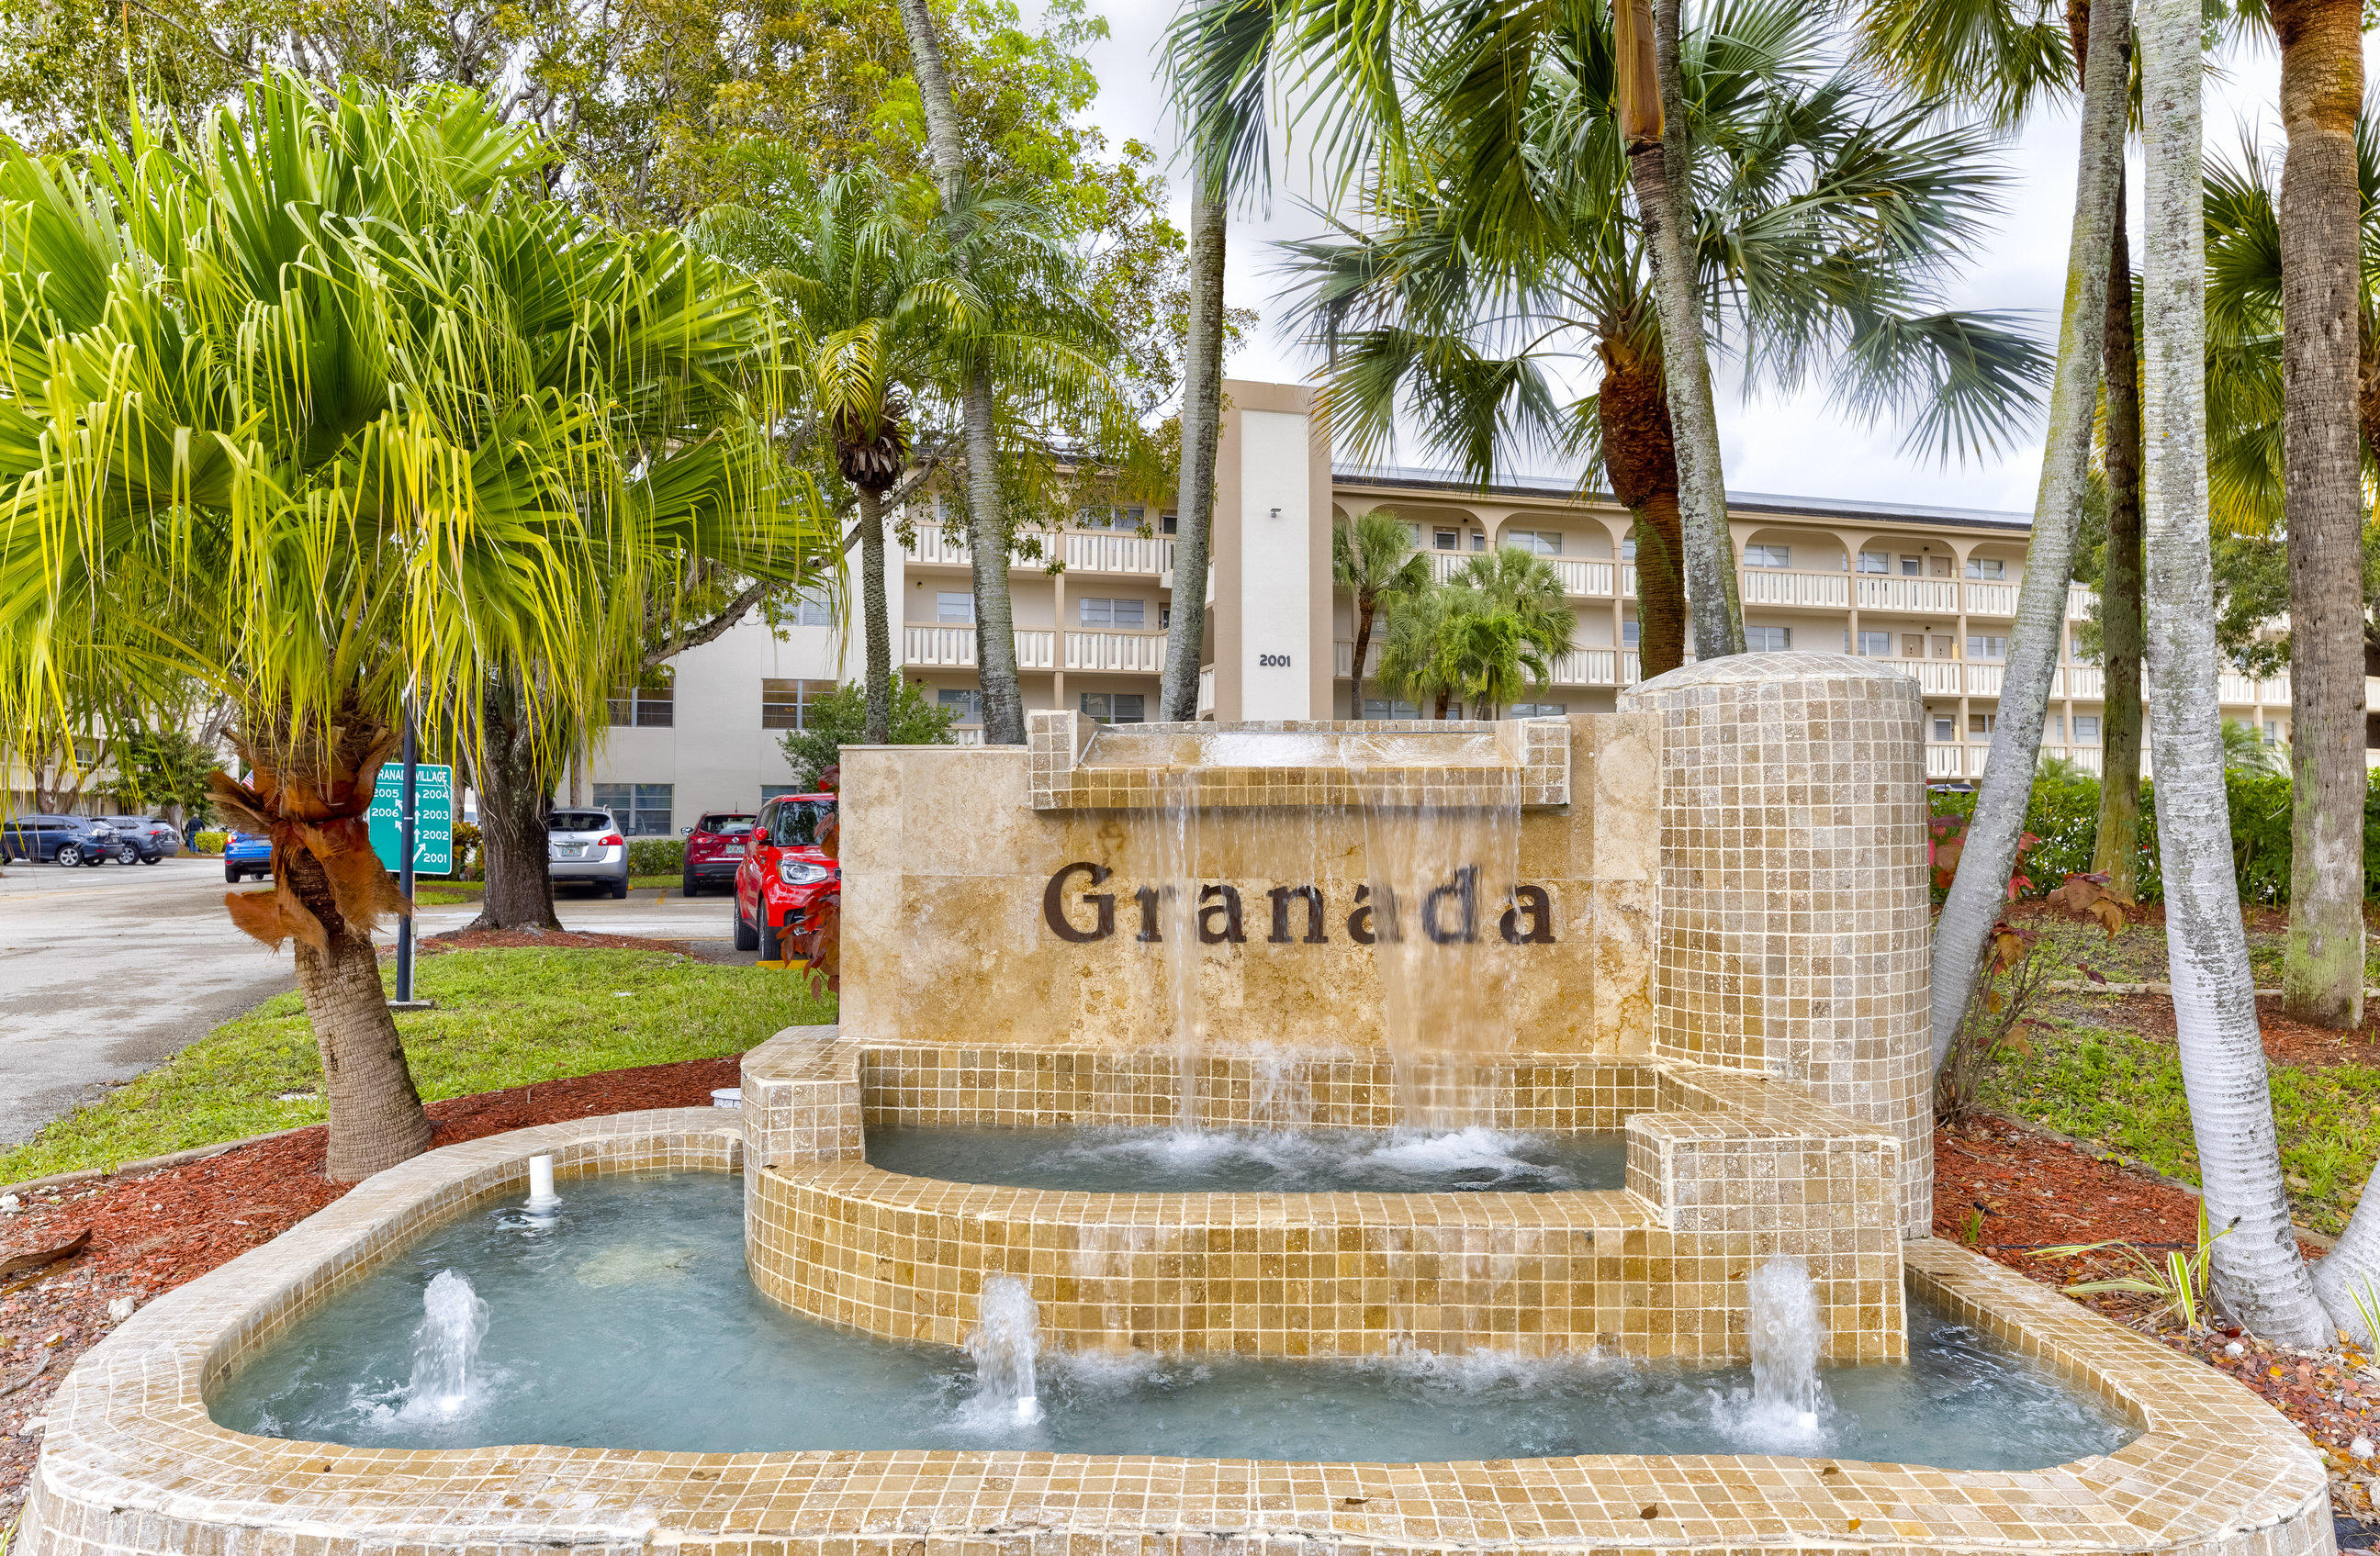 2003 Granada Drive K1 Coconut Creek, FL 33066 Coconut Creek FL 33066